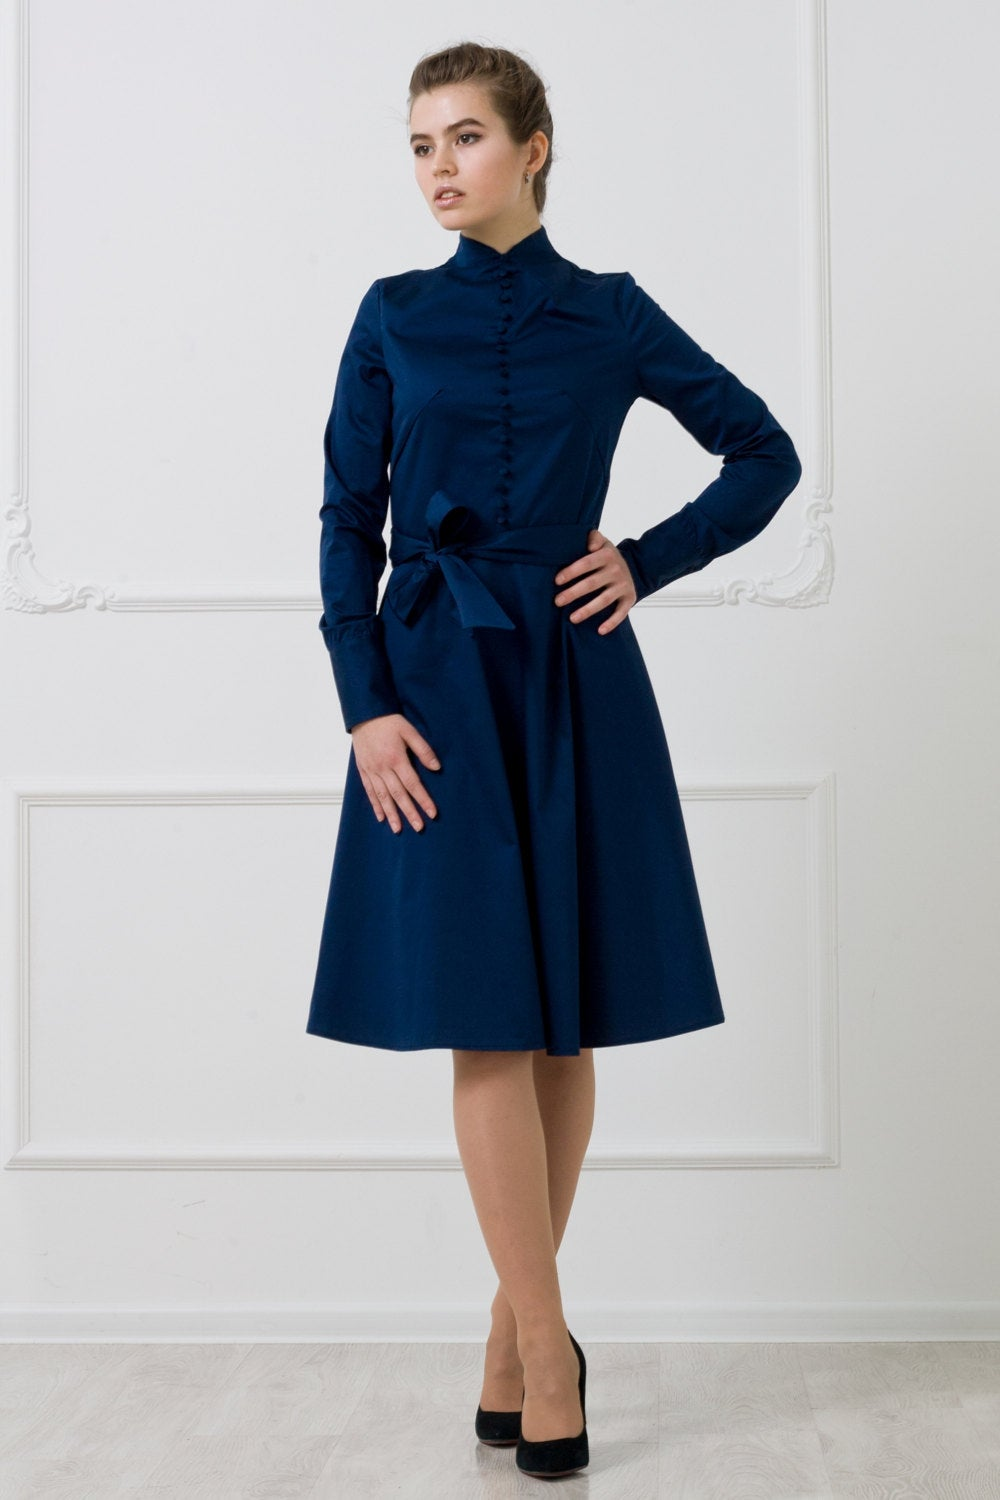 Navy high neck button front fit and flare dress